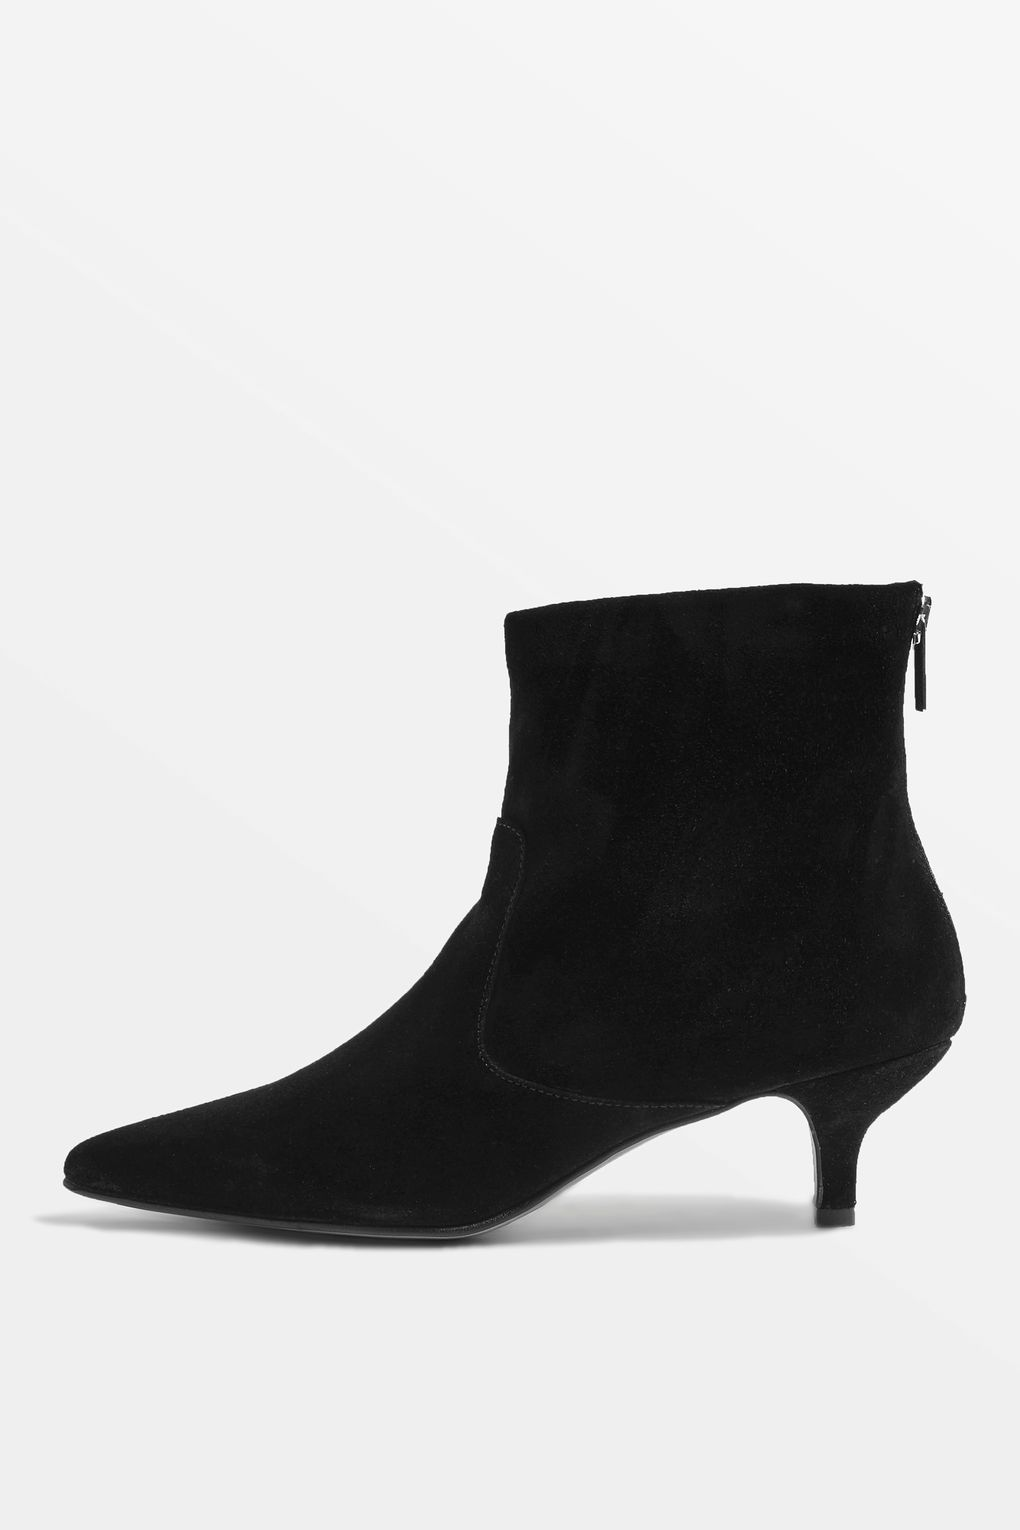 Boots With Kitten Heel 9cL9GDrB